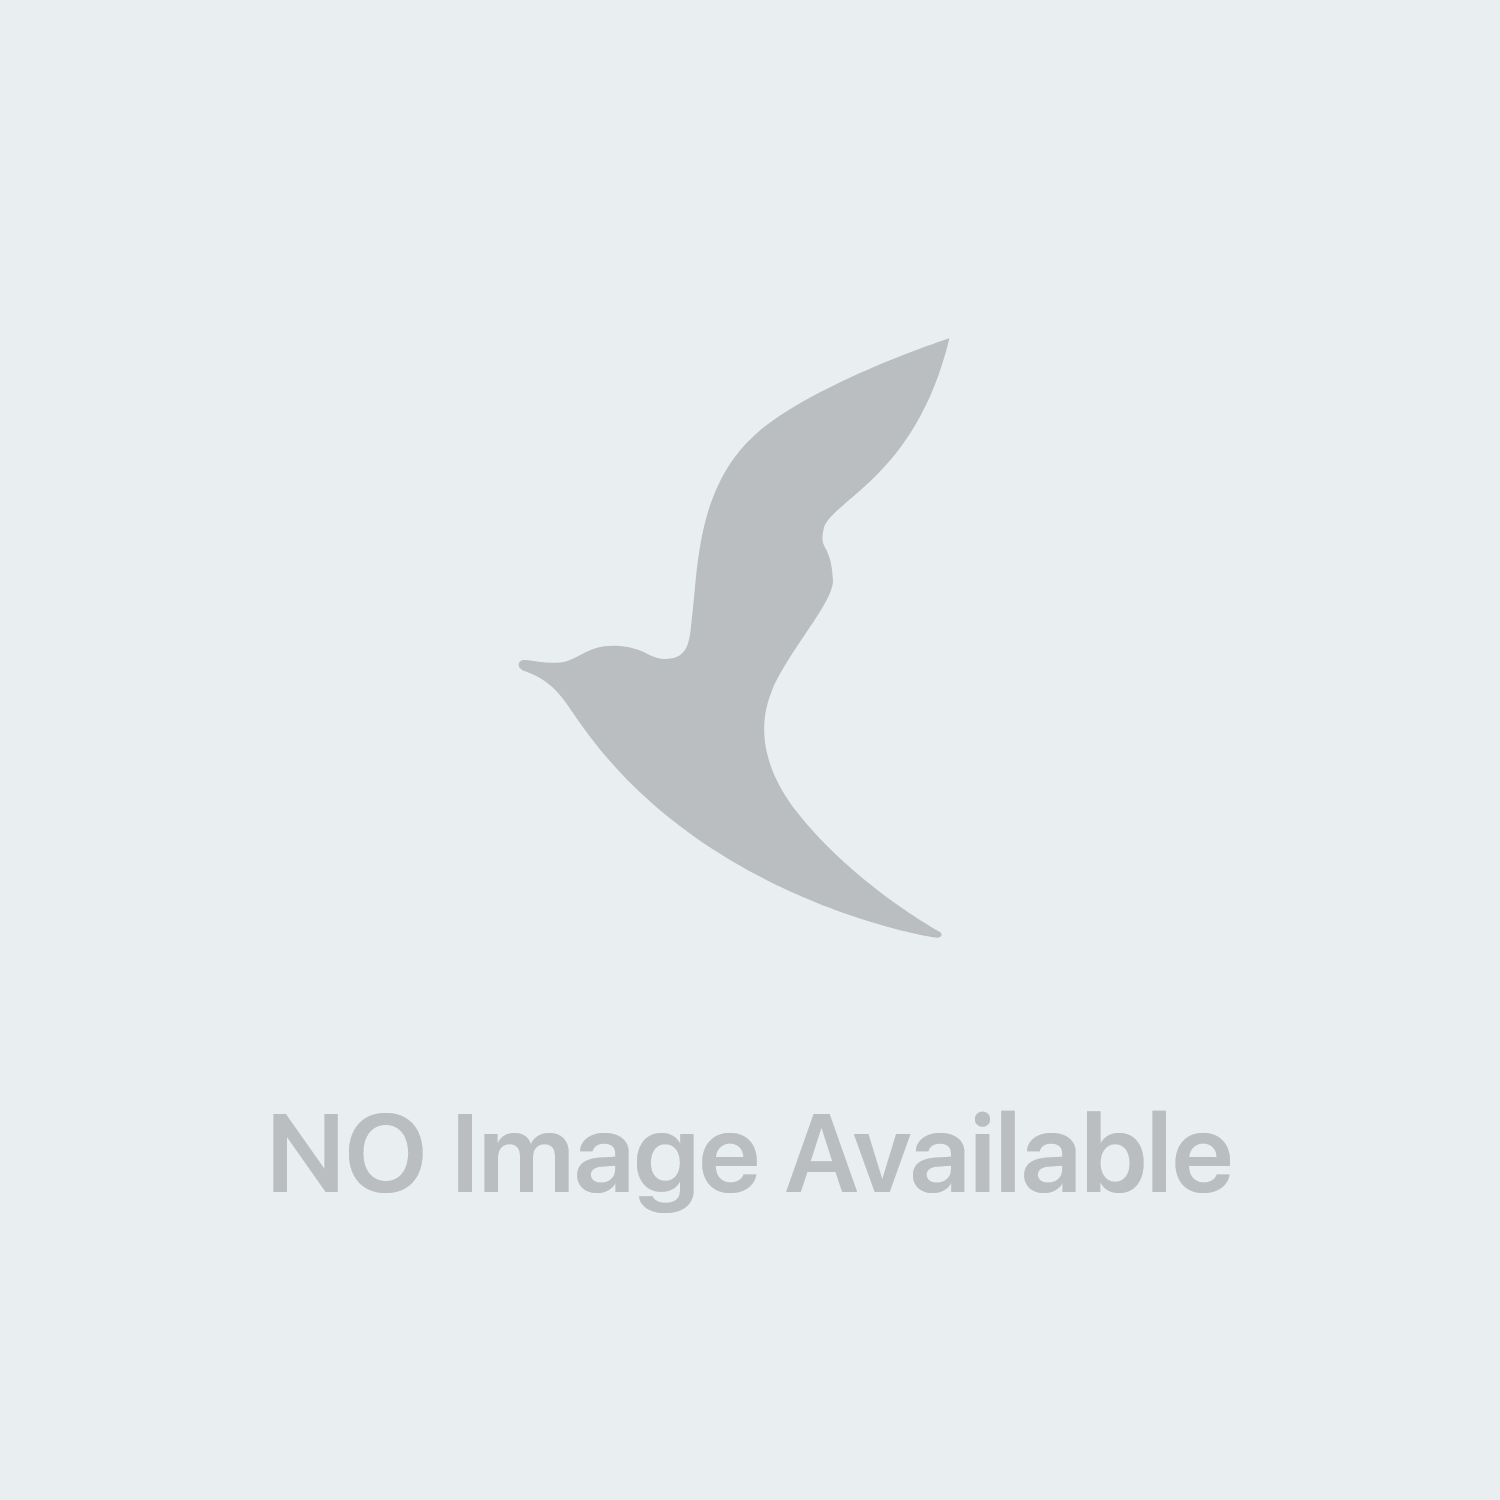 Planter's Soft Crema Peeling Viso 50 Ml